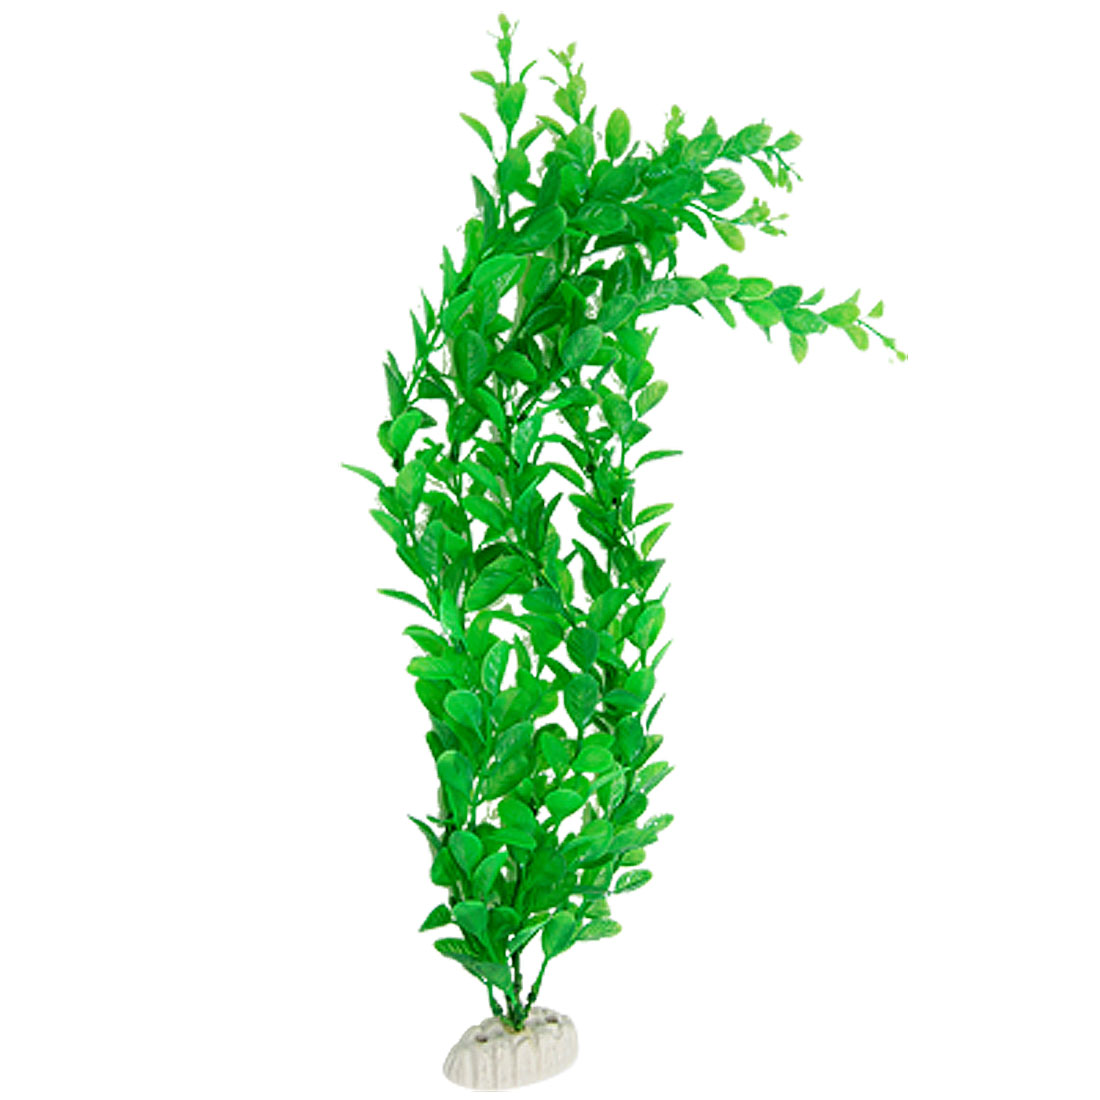 Plastic Long Plant Green Grass for Aquarium